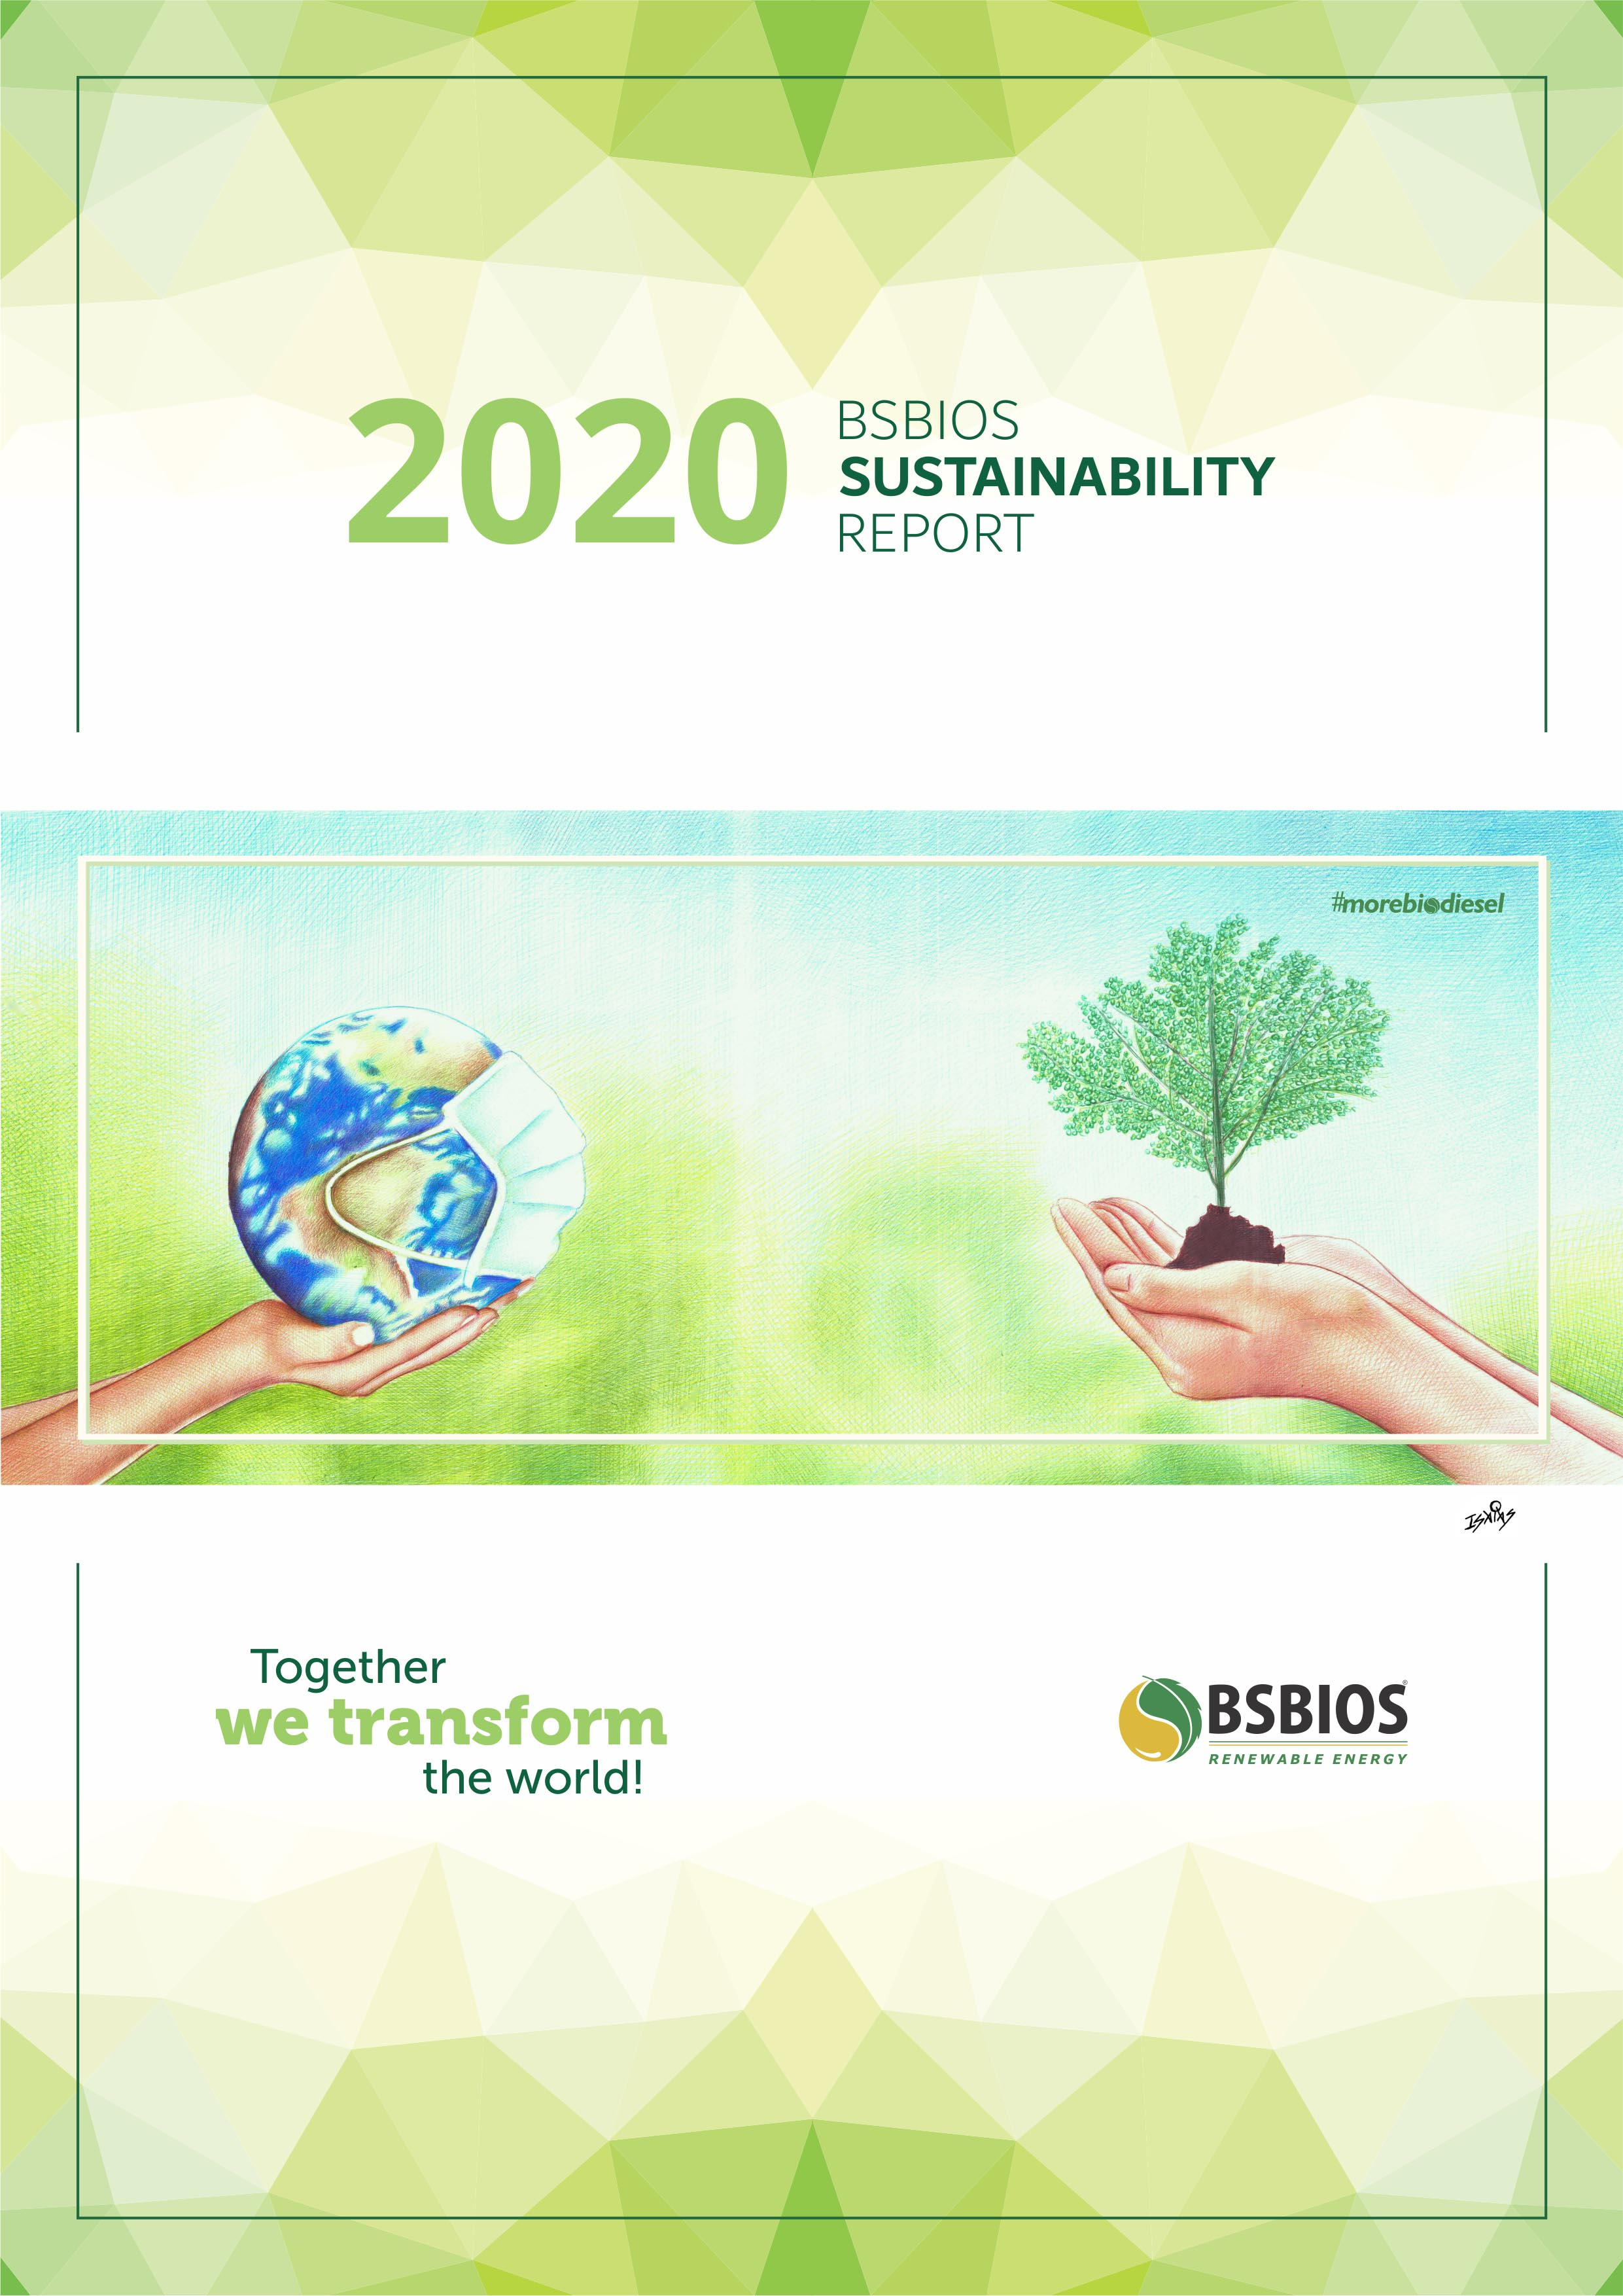 BSBIOS reaffirms ESG commitment in Sustainability Report 2020